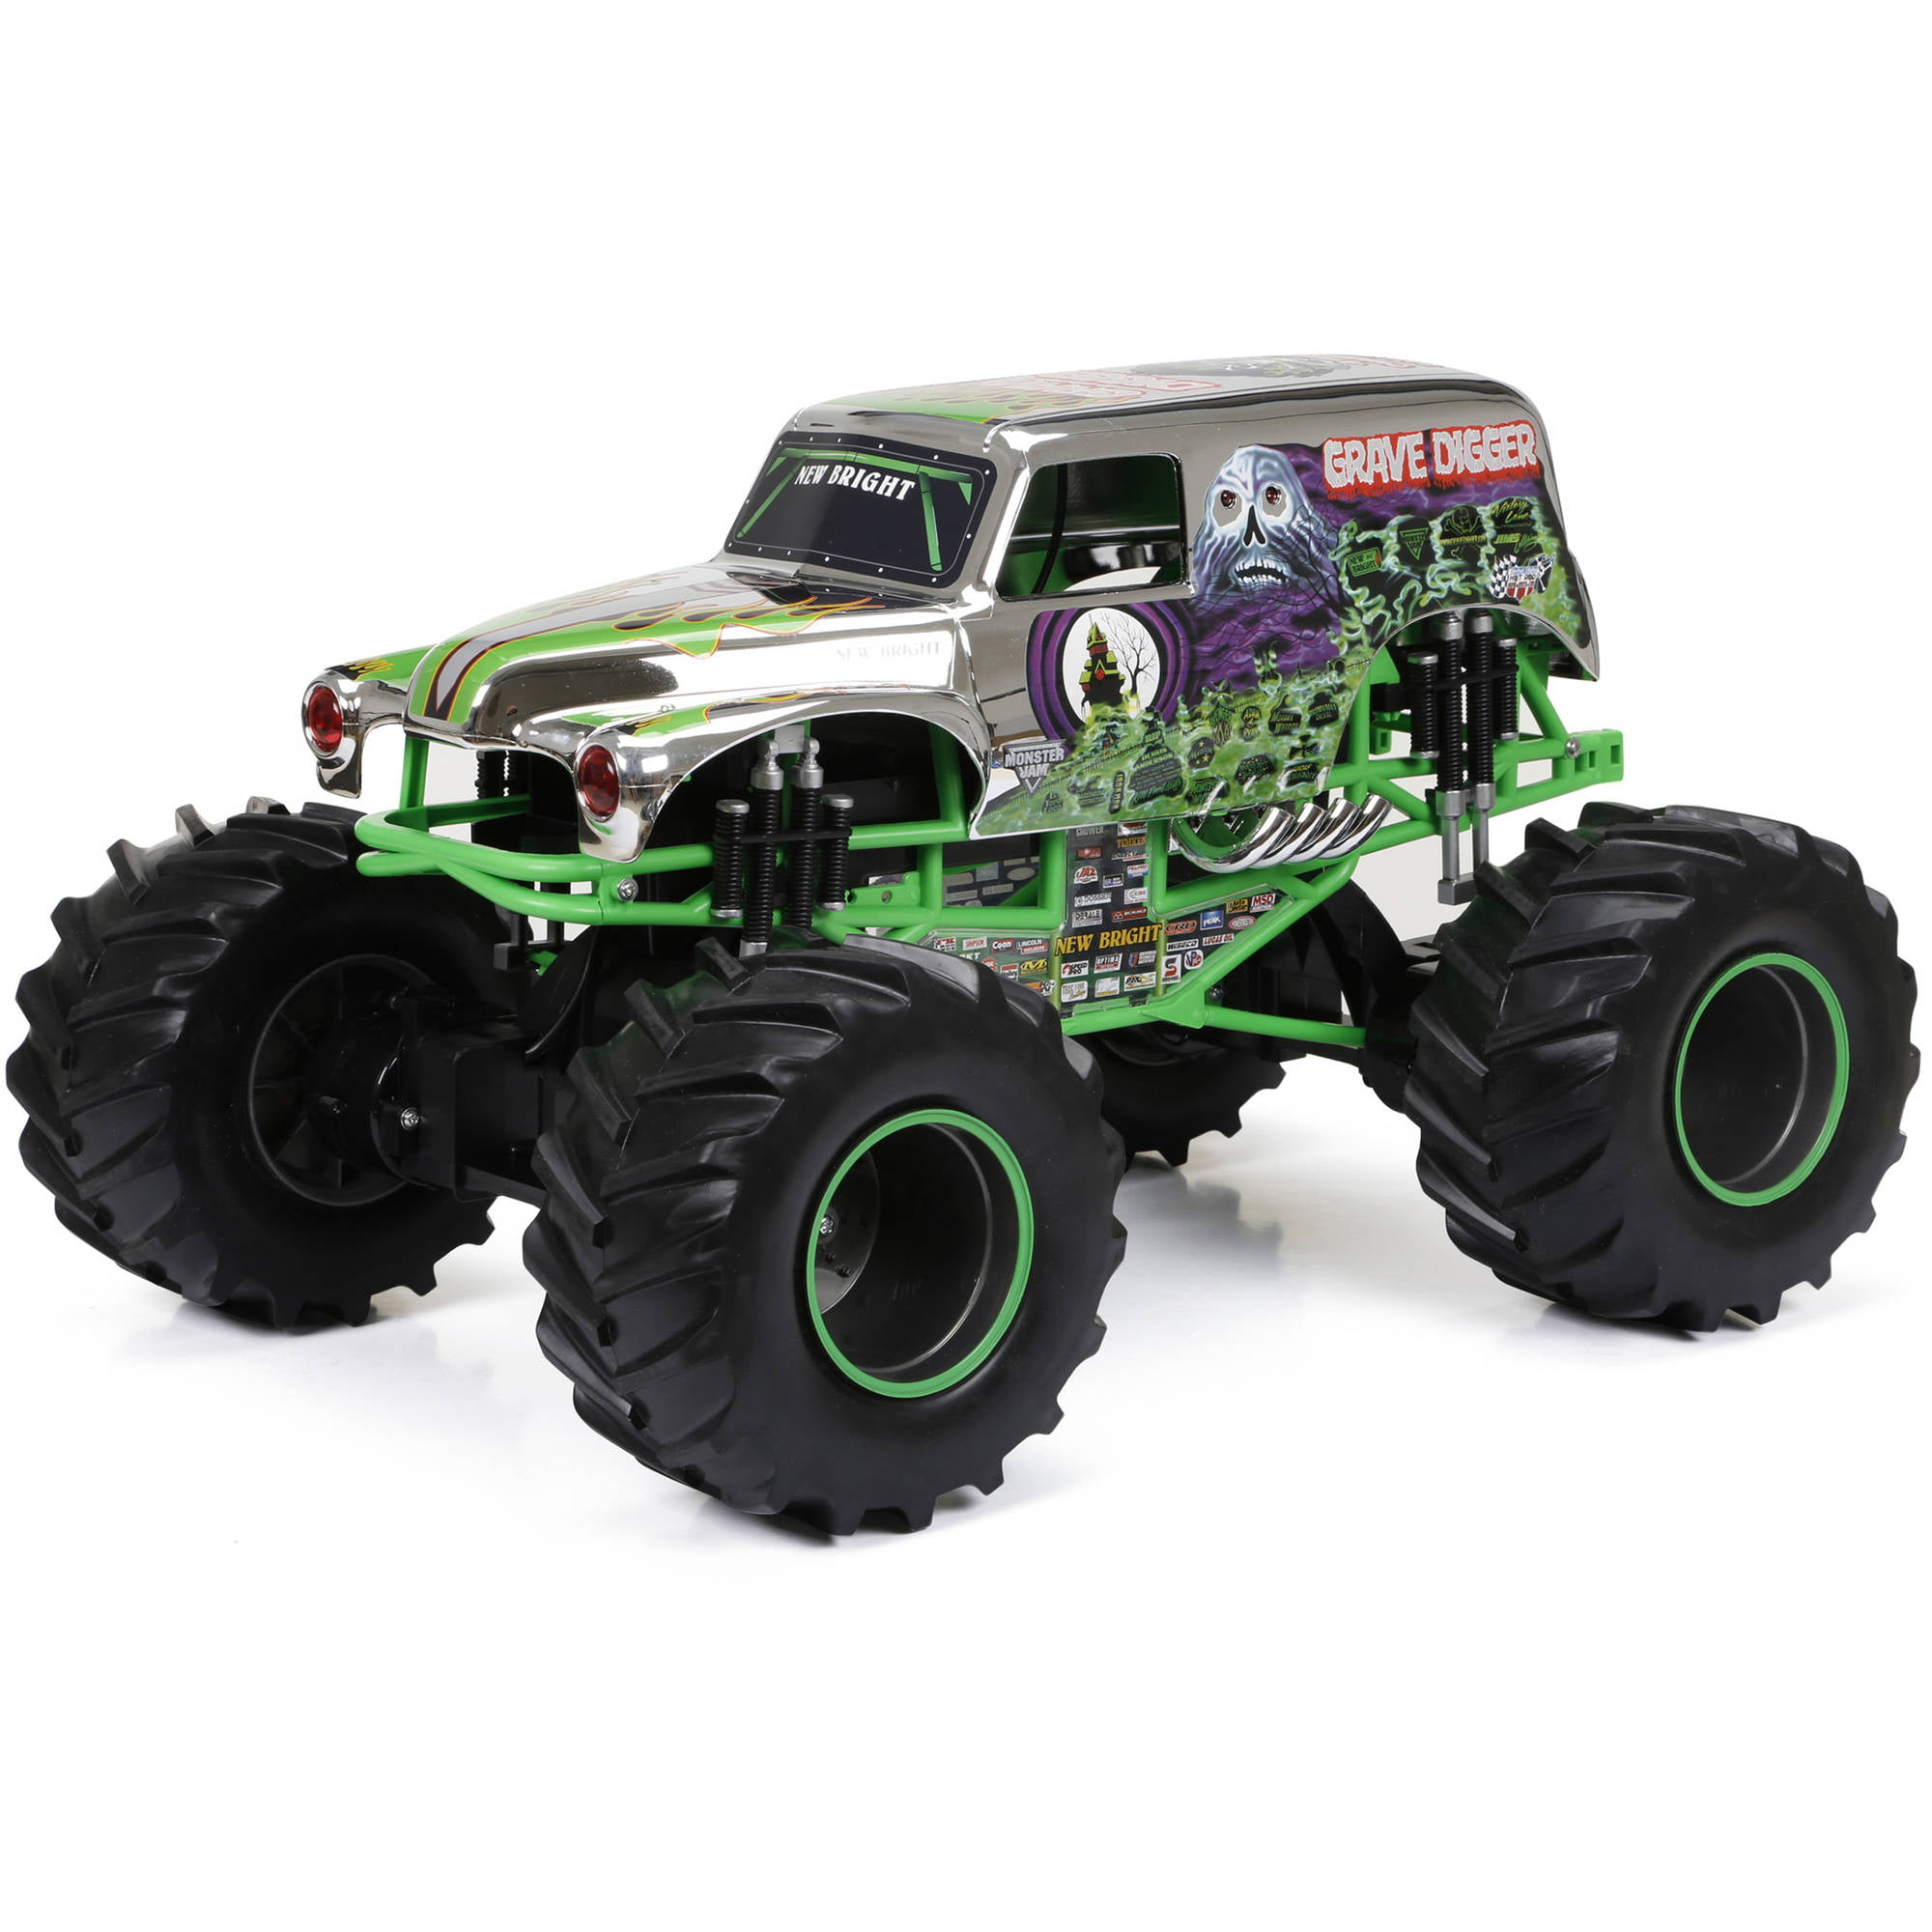 New Bright R/C F/F 12.8-Volt 1:8 Monster Jam Grave Digger, Chrome -  Walmart.com